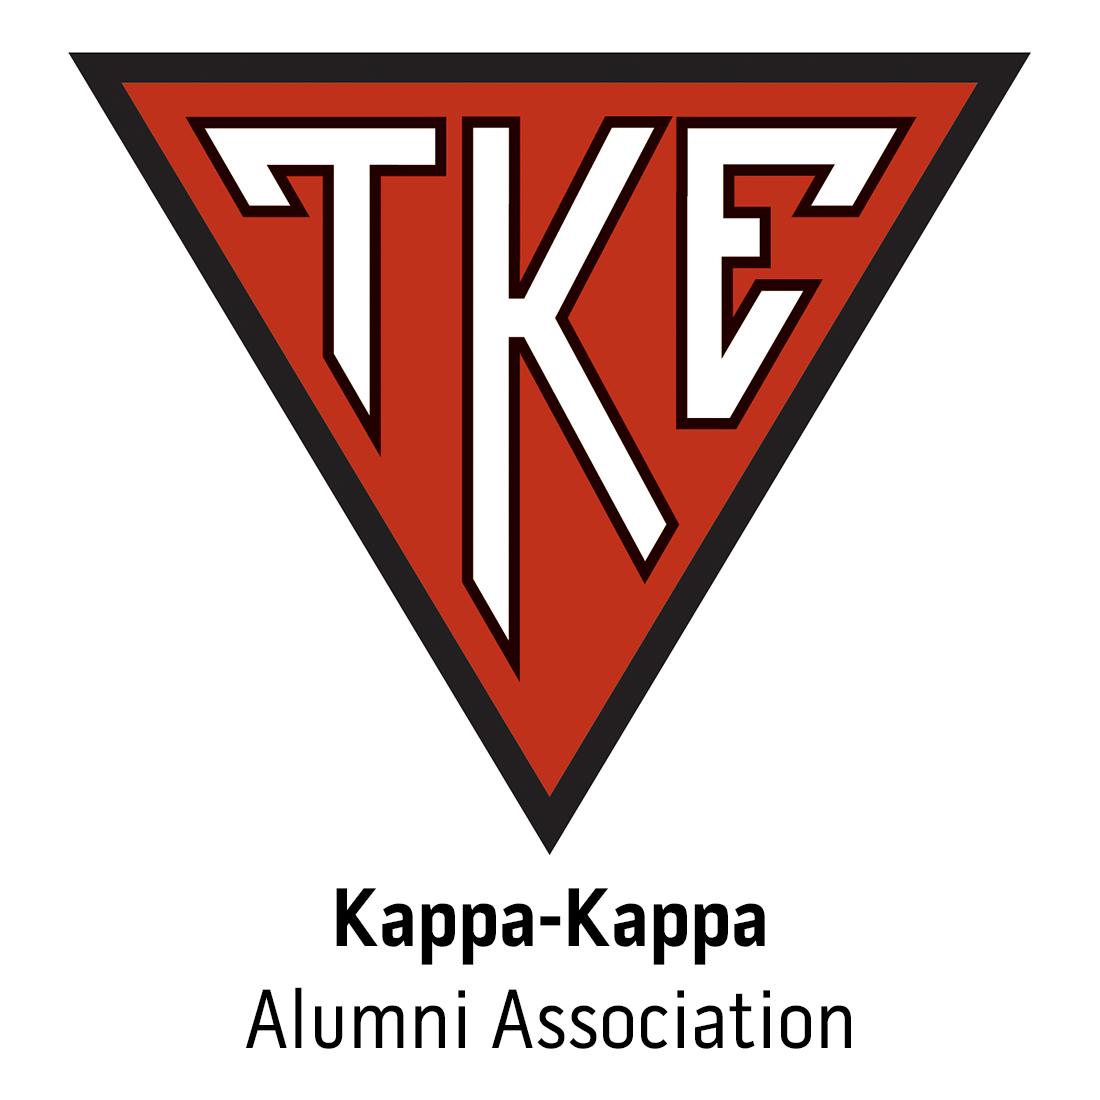 Kappa-Kappa Alumni Association for Monmouth University